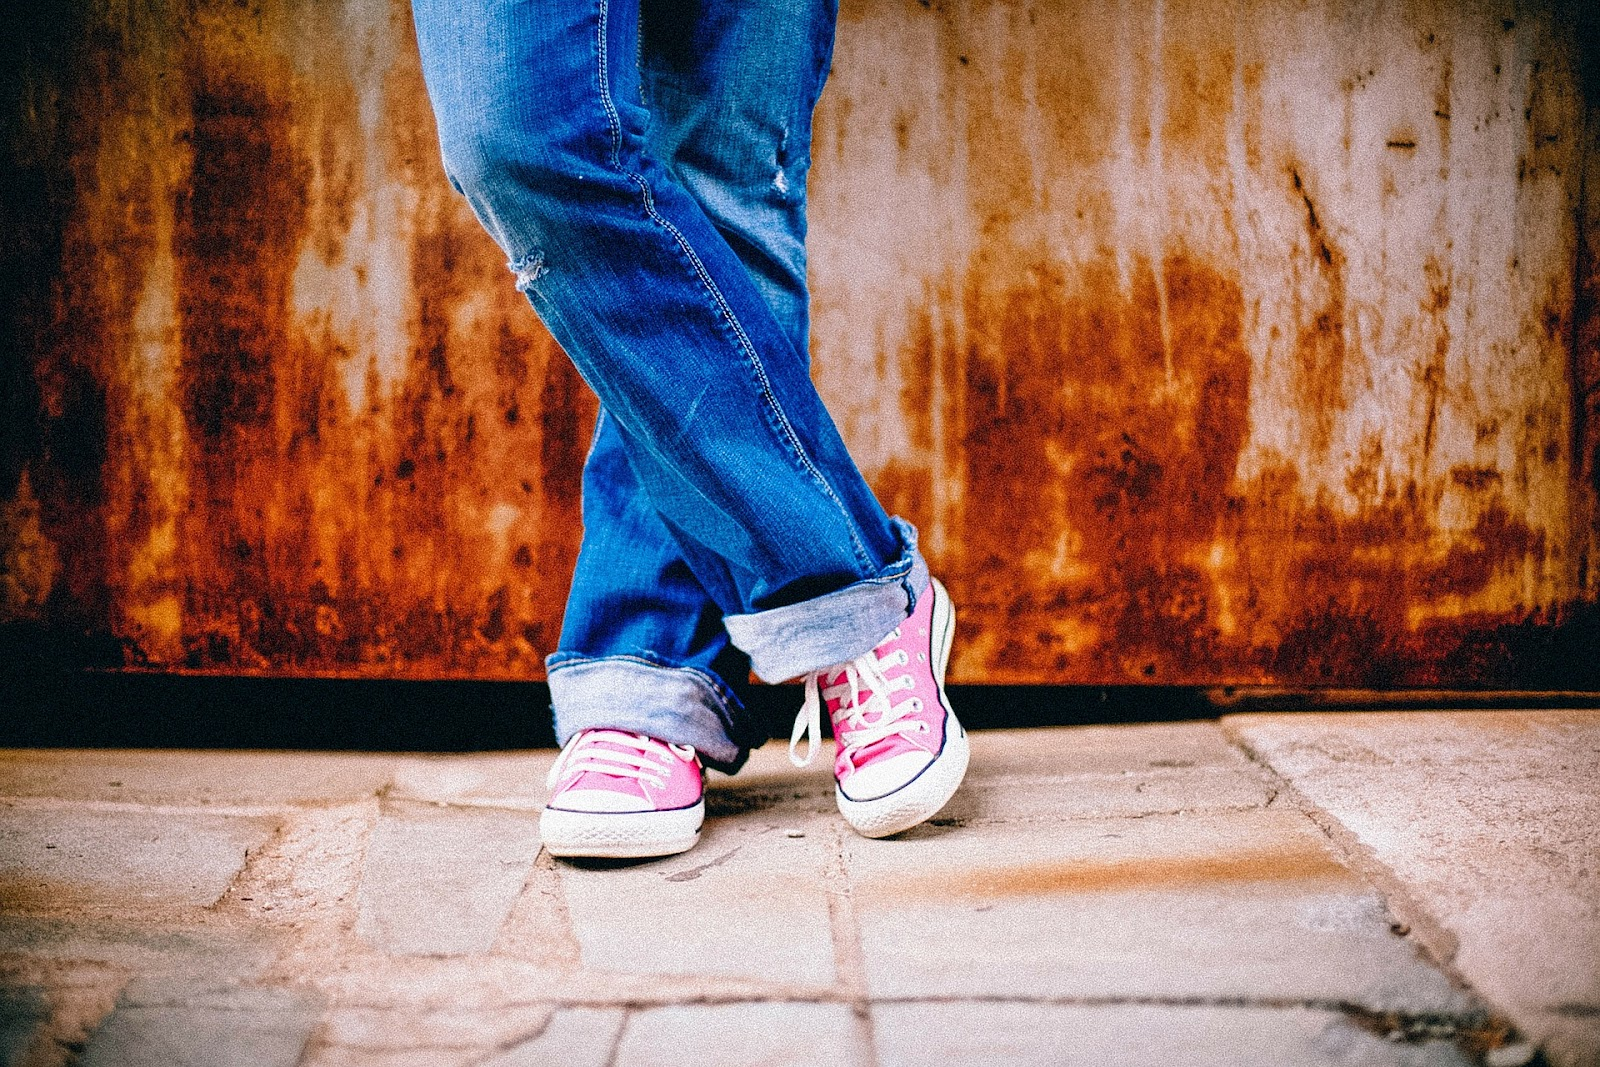 Legs of a person in jeans and pink Converse shoes